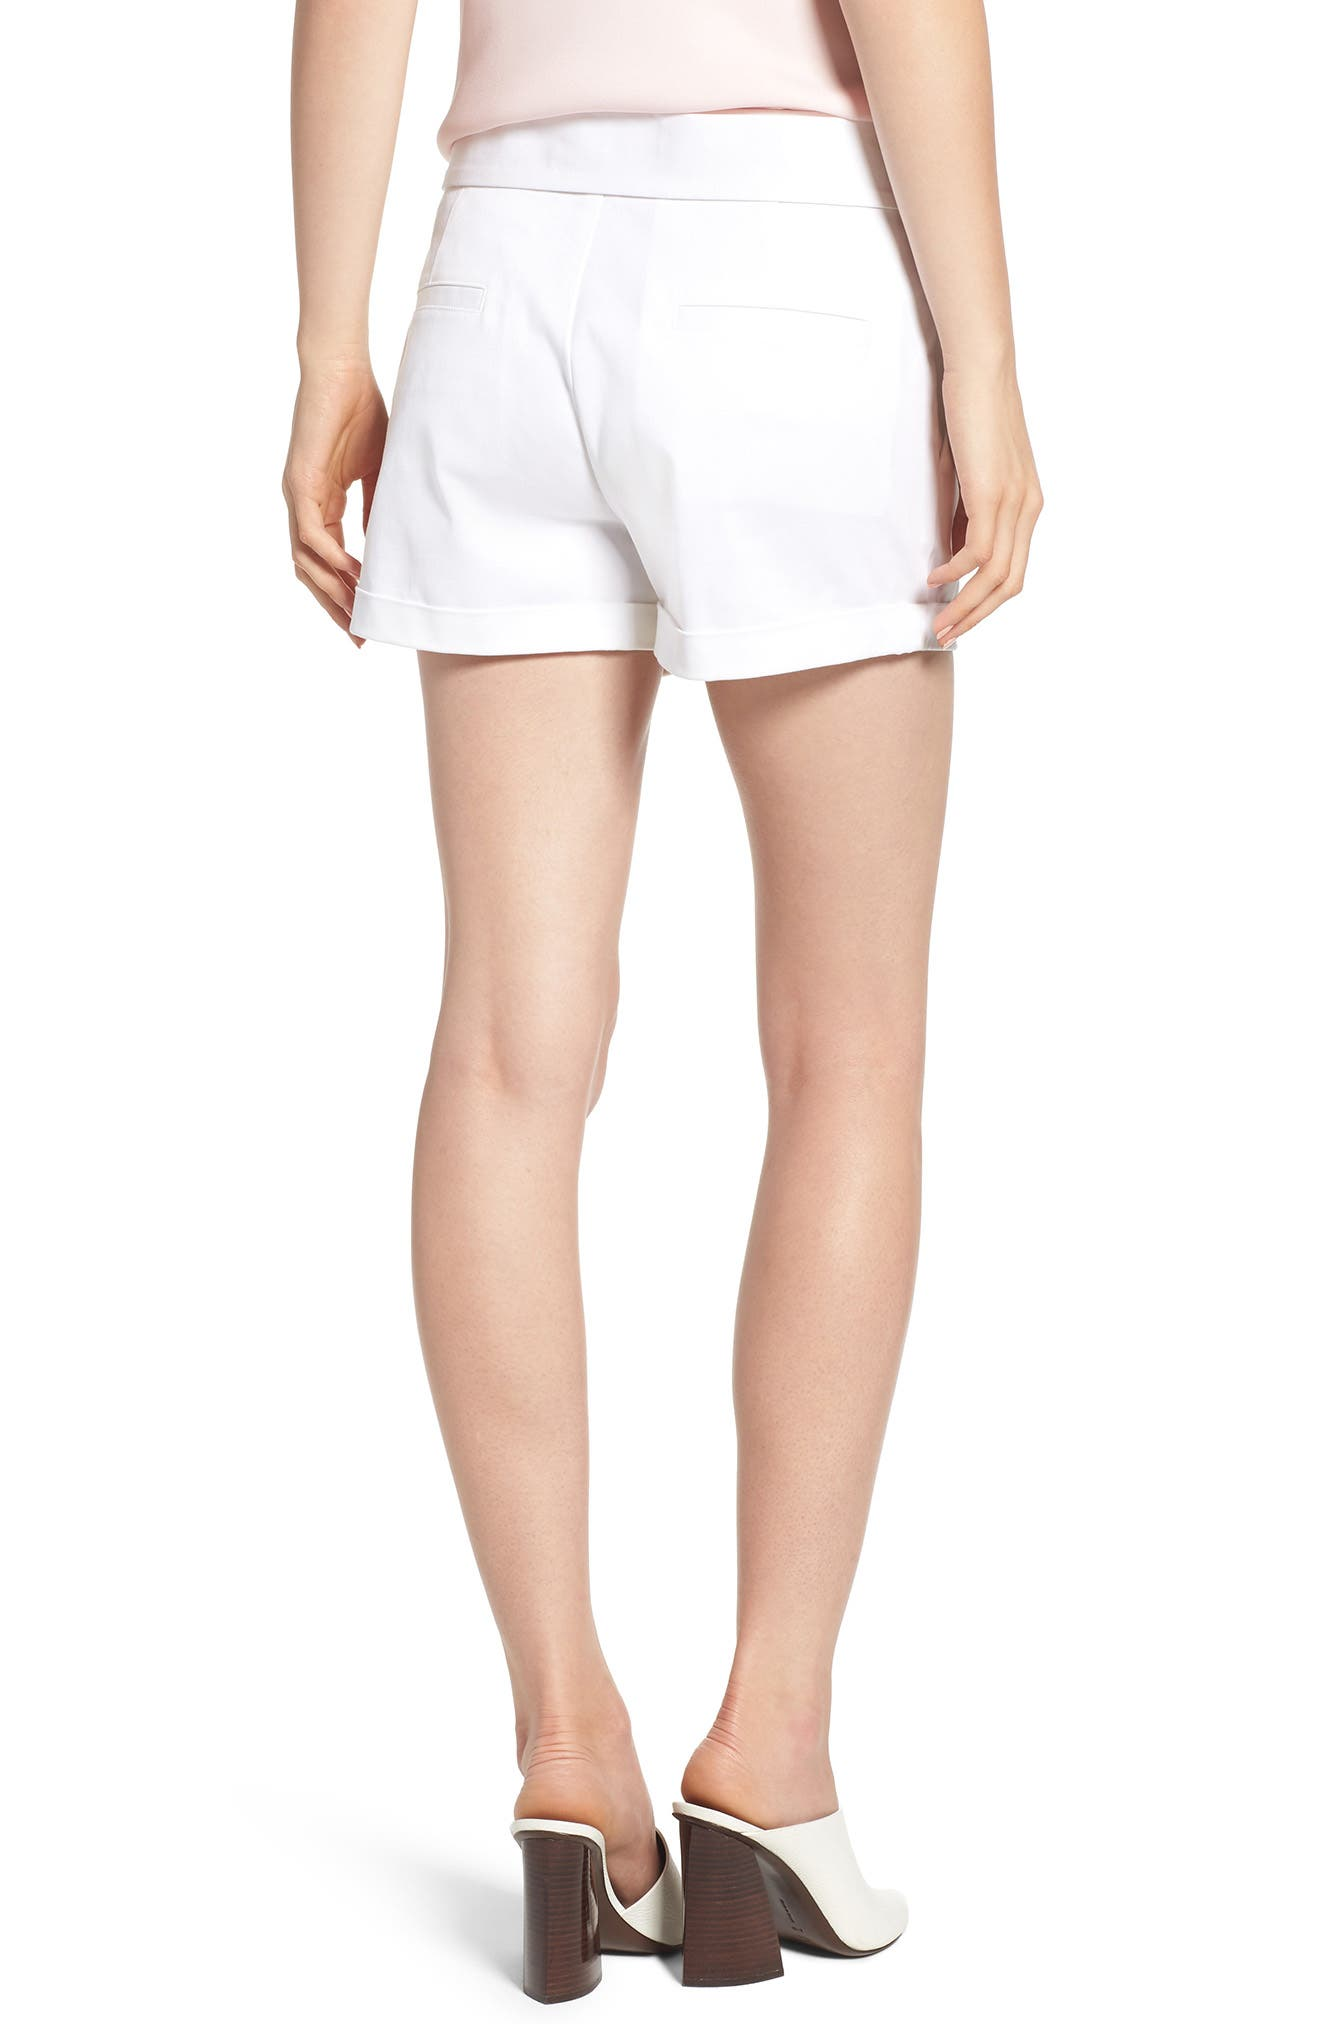 Yelinda Shorts,                             Alternate thumbnail 2, color,                             White